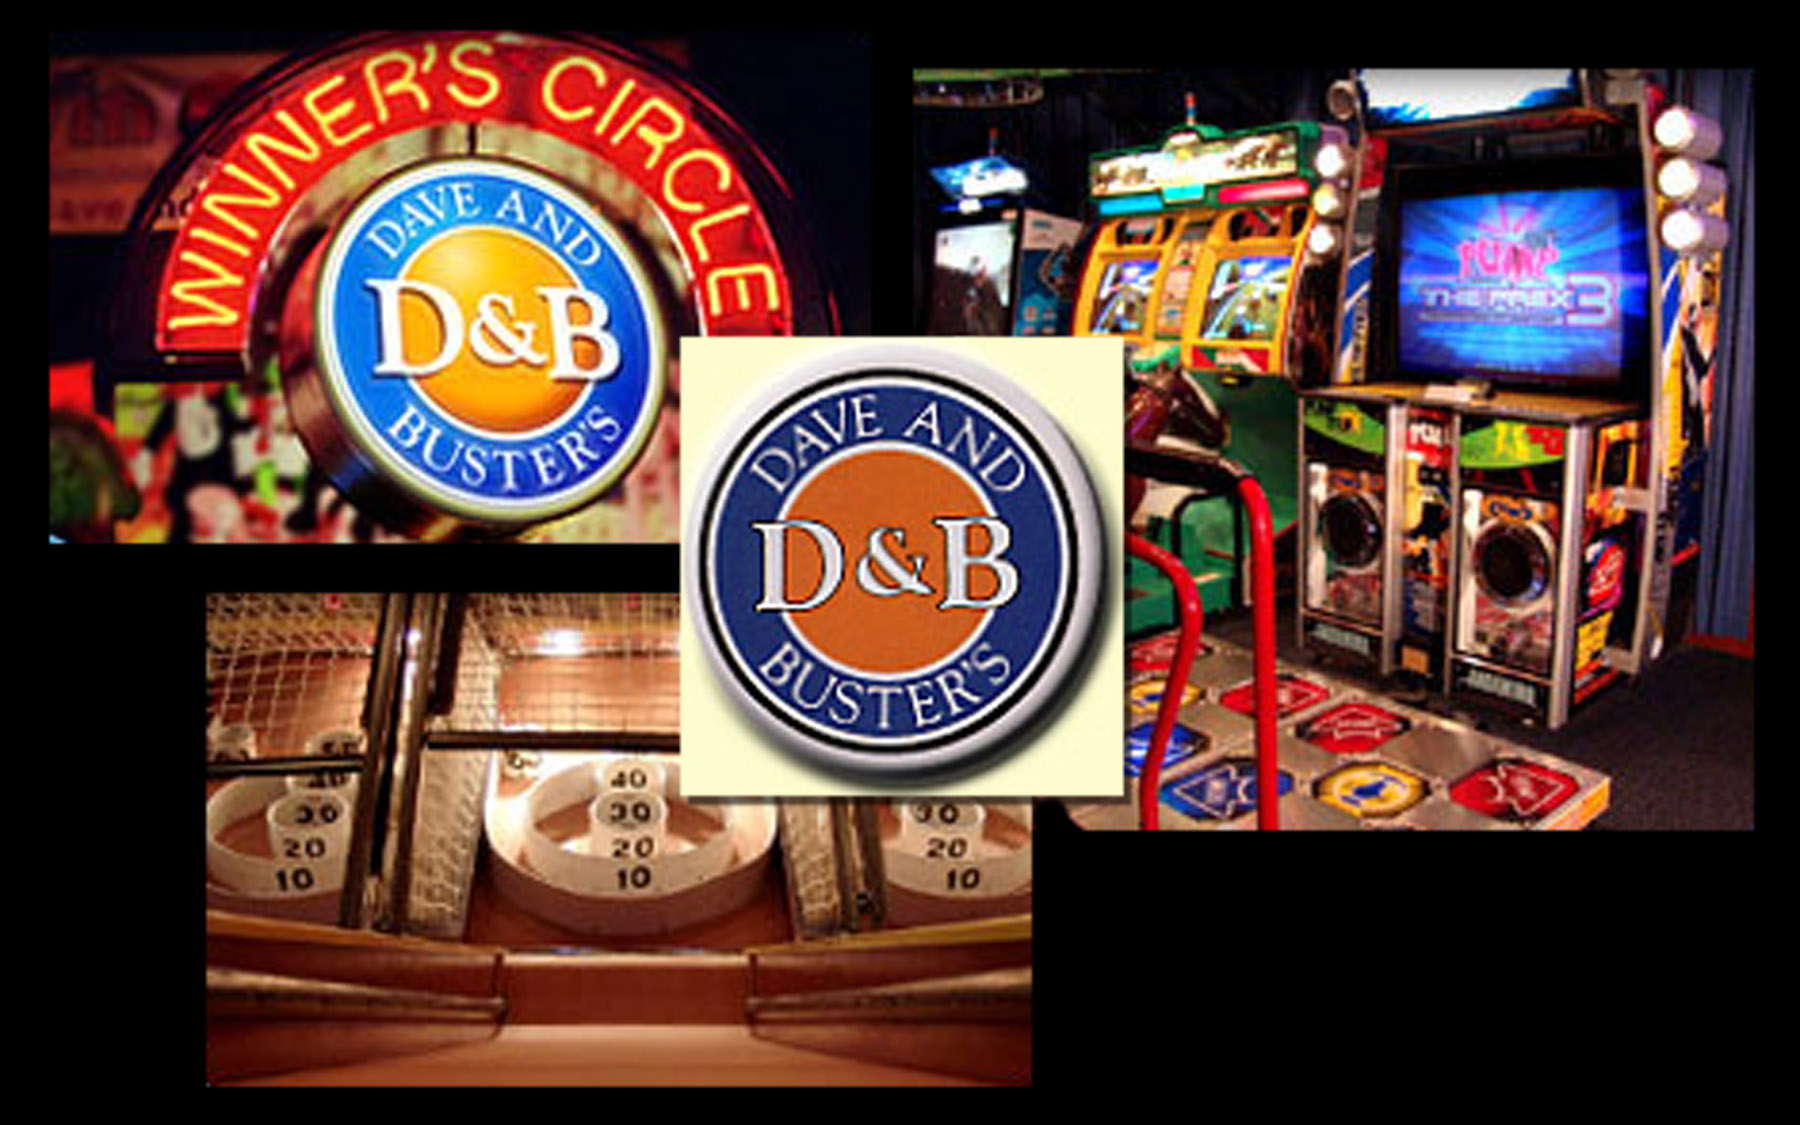 Dave & Buster's in Friendswood, TX